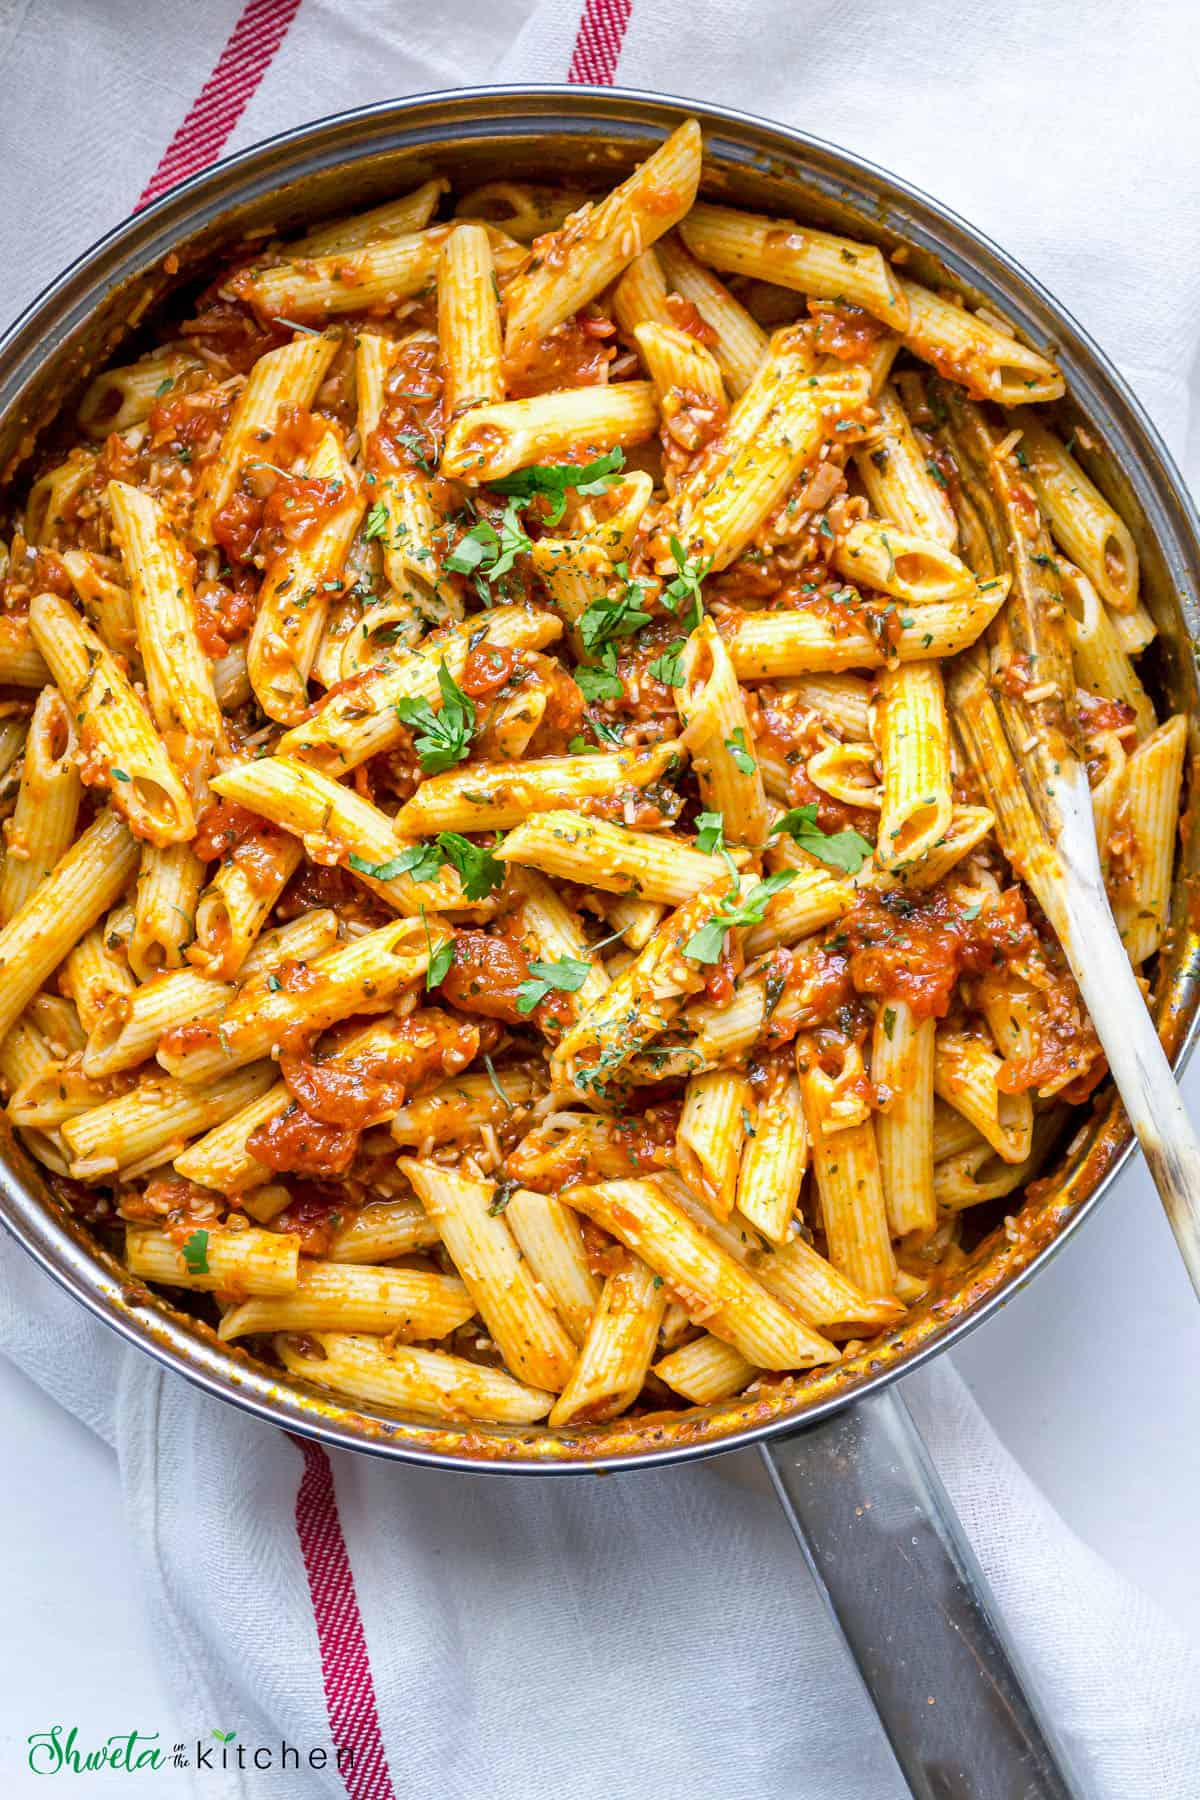 Arrabiata sauce stirred into pasta in a pot and garnished with fresh parsley